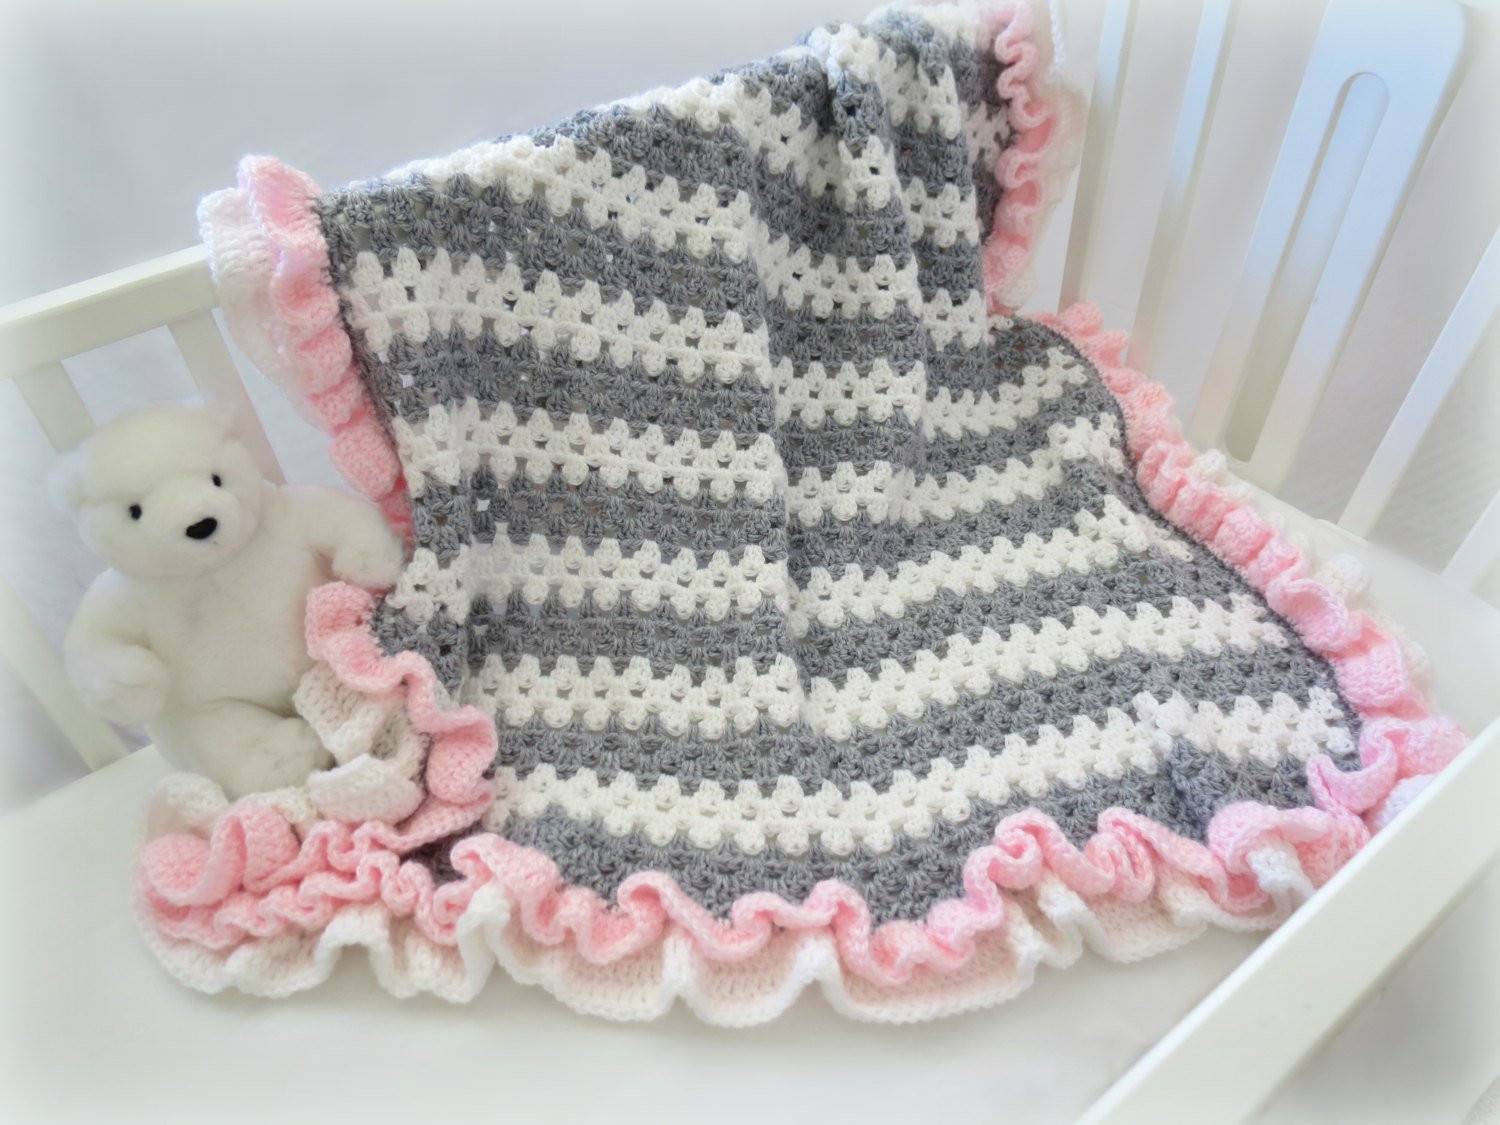 Baby Boy Crochet Blanket Patterns New Crochet Baby Blanket Pattern Baby Crochet Blanket Afghan Of Baby Boy Crochet Blanket Patterns Beautiful Marvelous Monkey Blankets Free Crochet Patterns